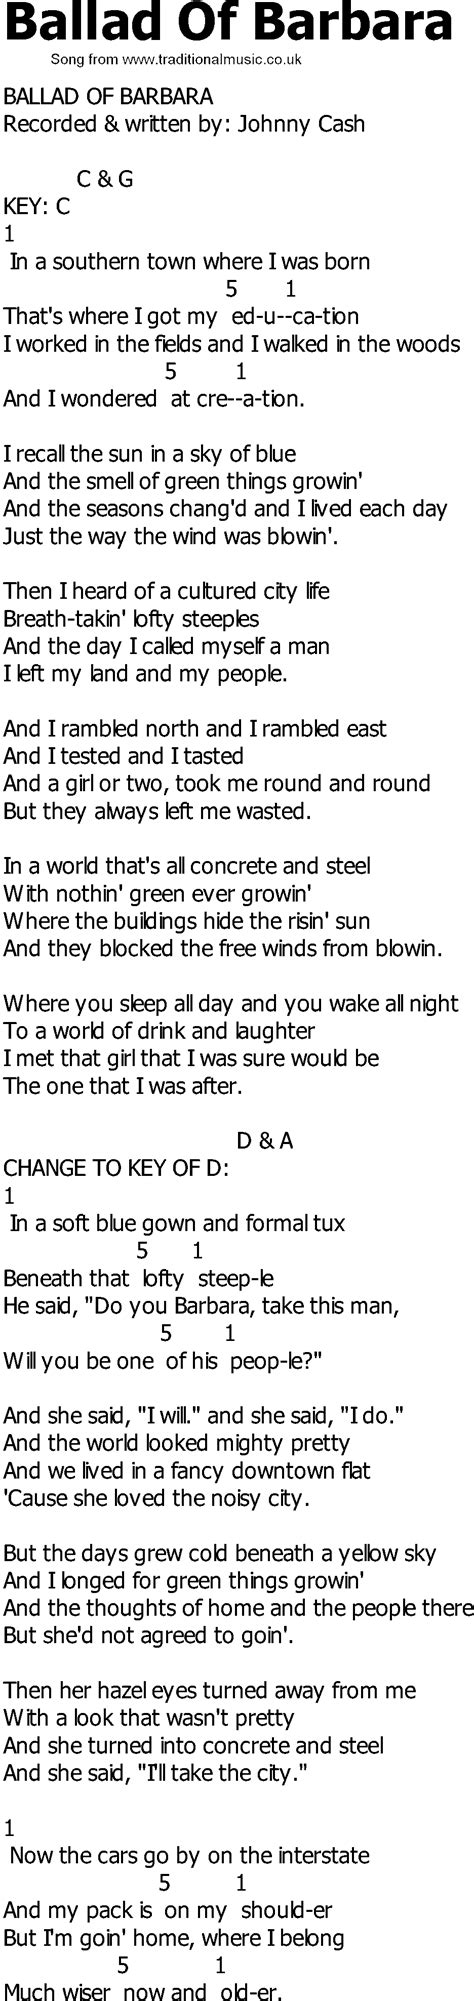 song in country song lyrics with chords ballad of barbara